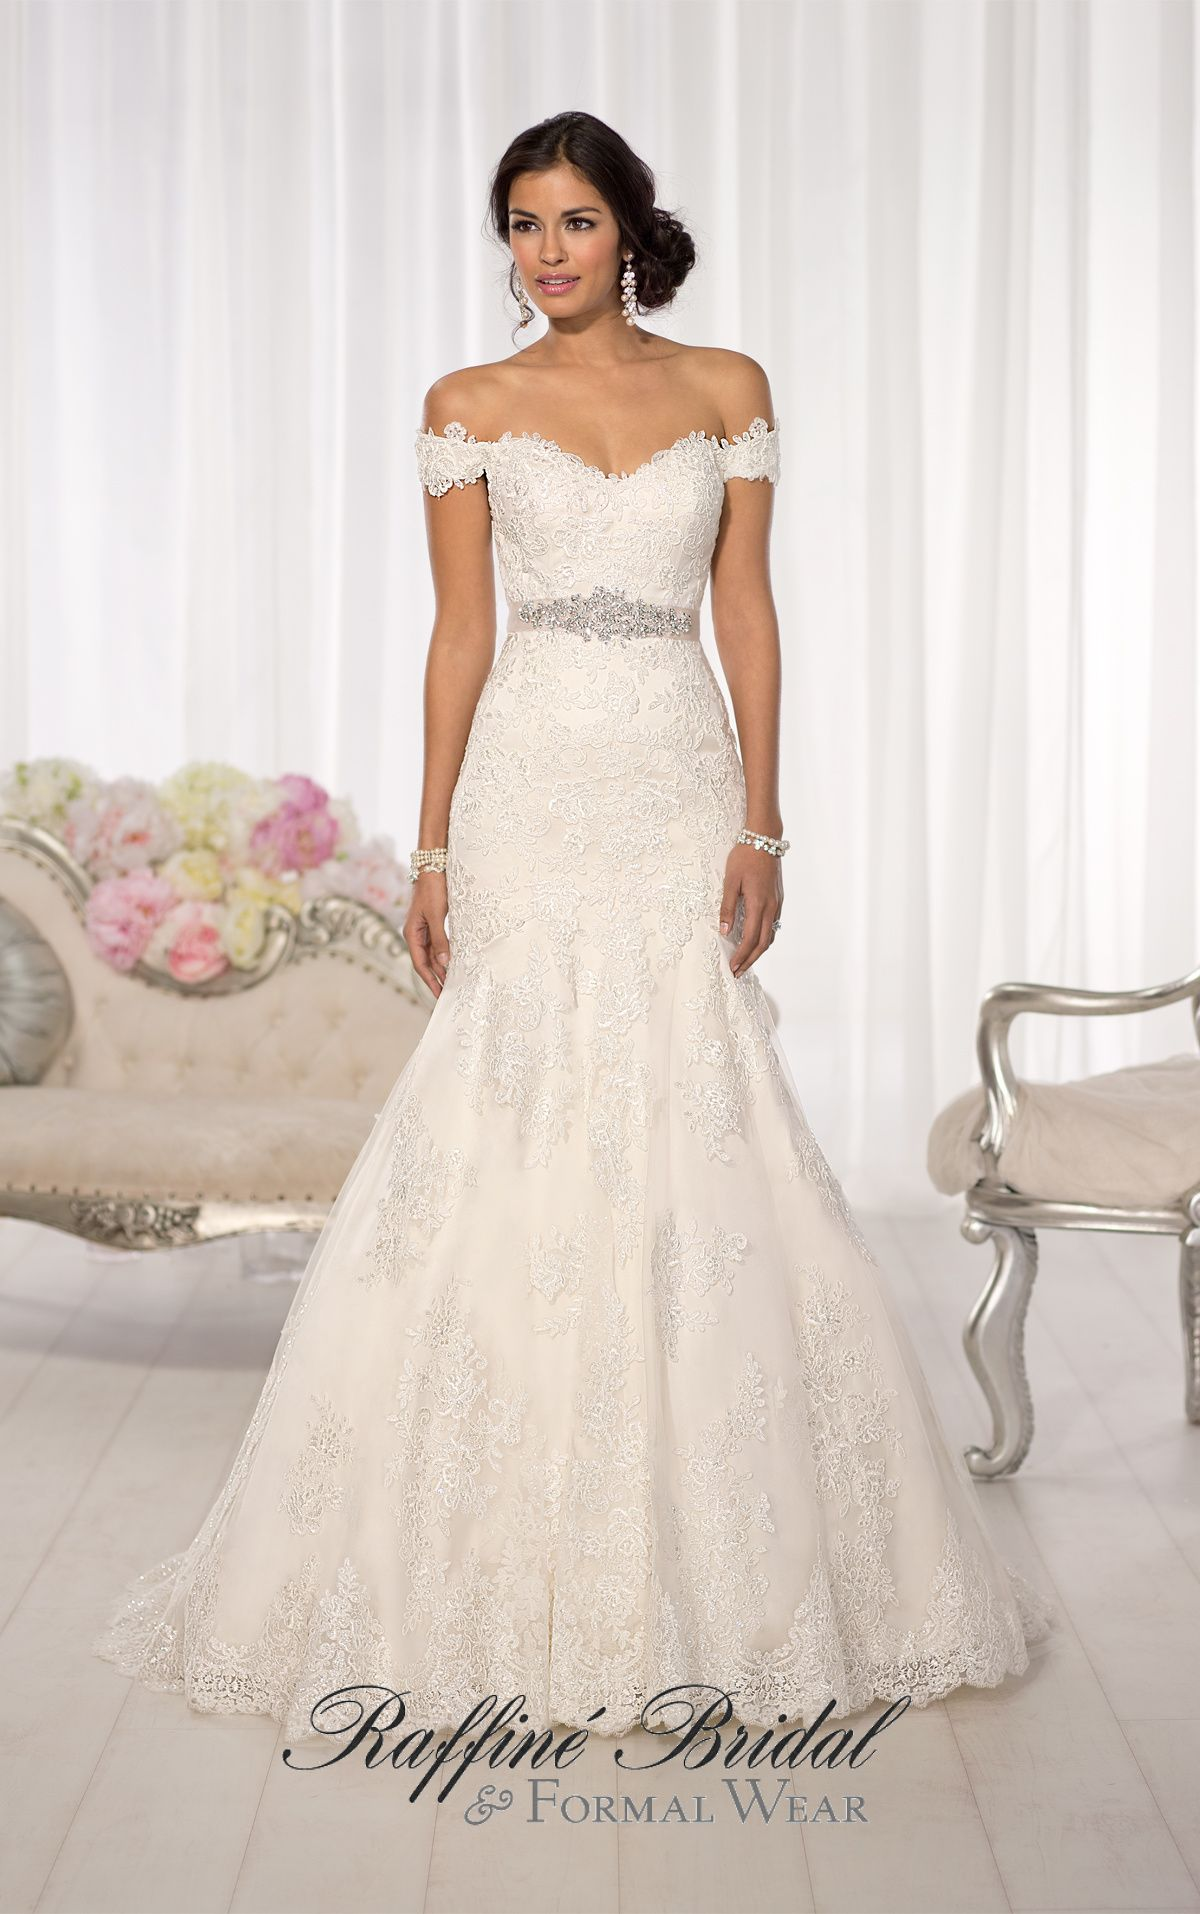 7fef4634f7c ... Australia  D1617 - All-over Lace fit and flare wedding gown featuring  sparkling Diamante beading throughout and romantic off the shoulder cap  sleeves.